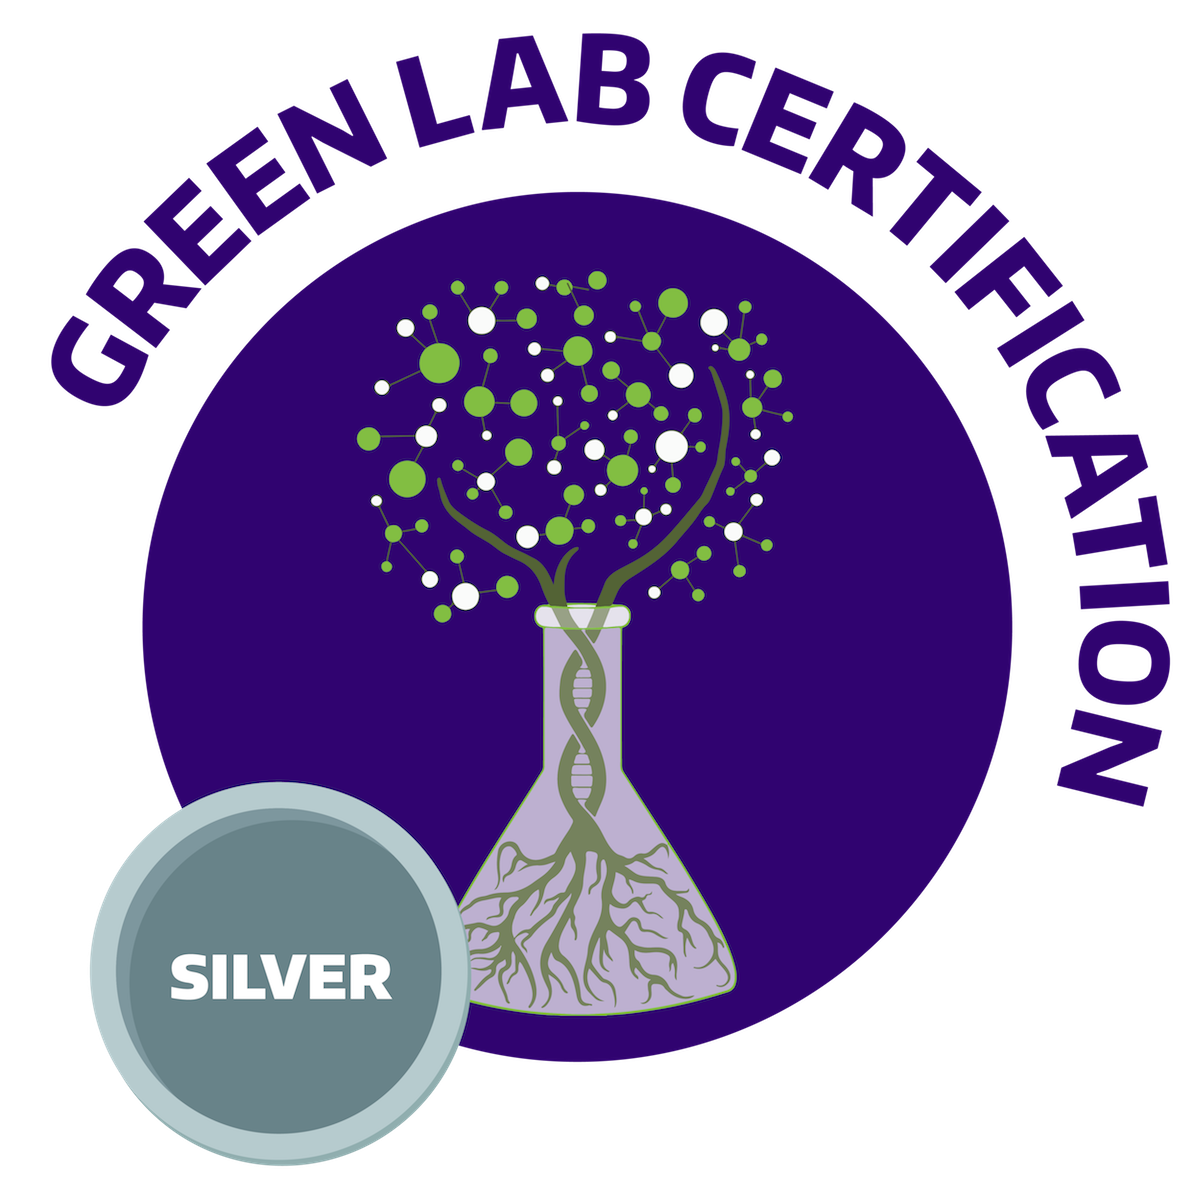 Green Lab silver level